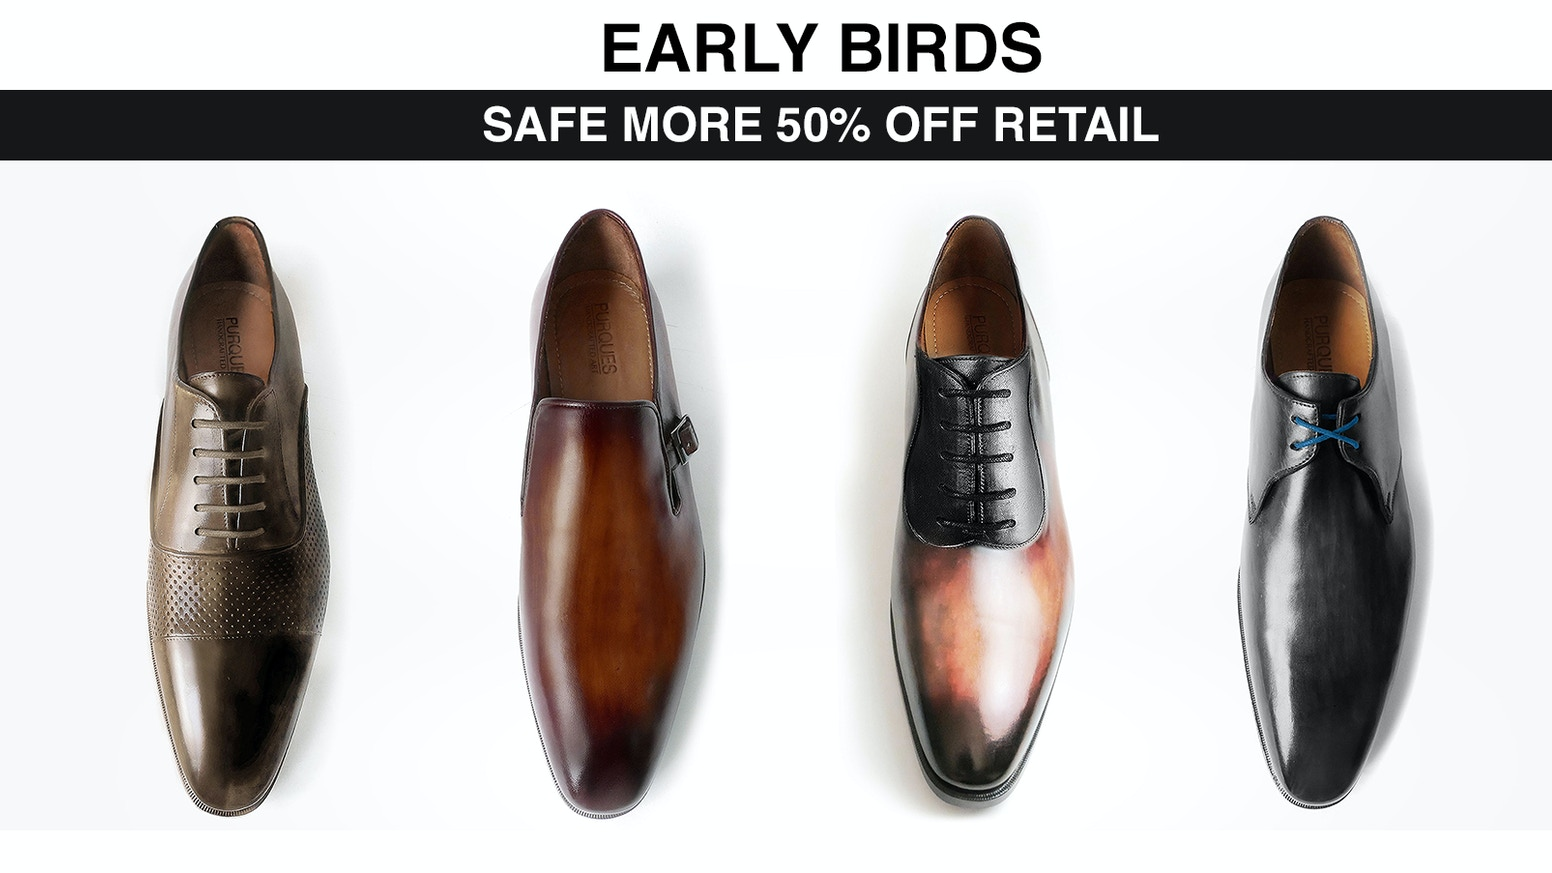 PURQUES - Italian Leather Shoes for the modern Man